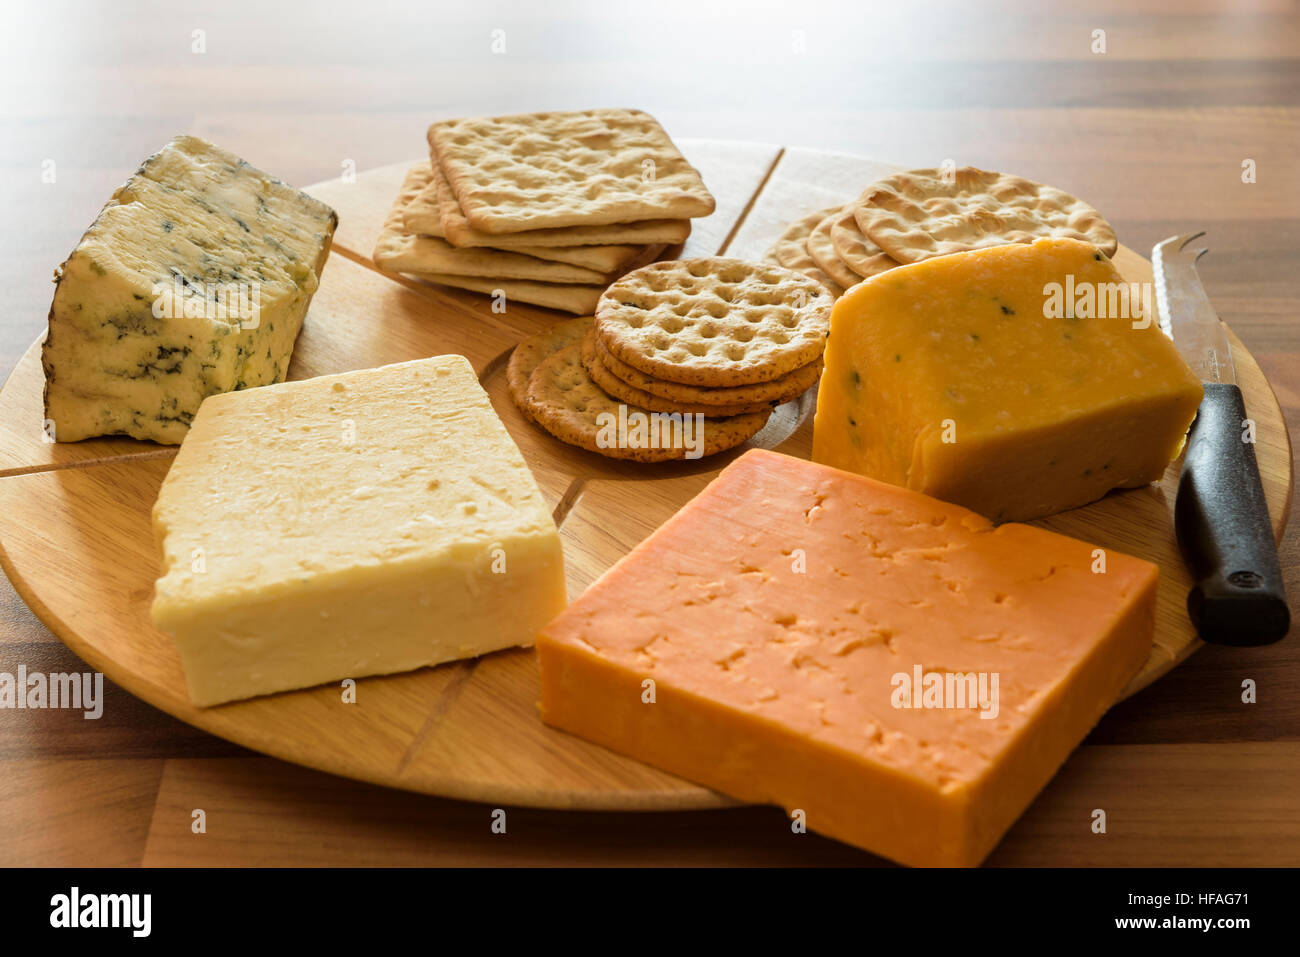 Assortment  of cheeses on a round wooden cheese board. - Stock Image